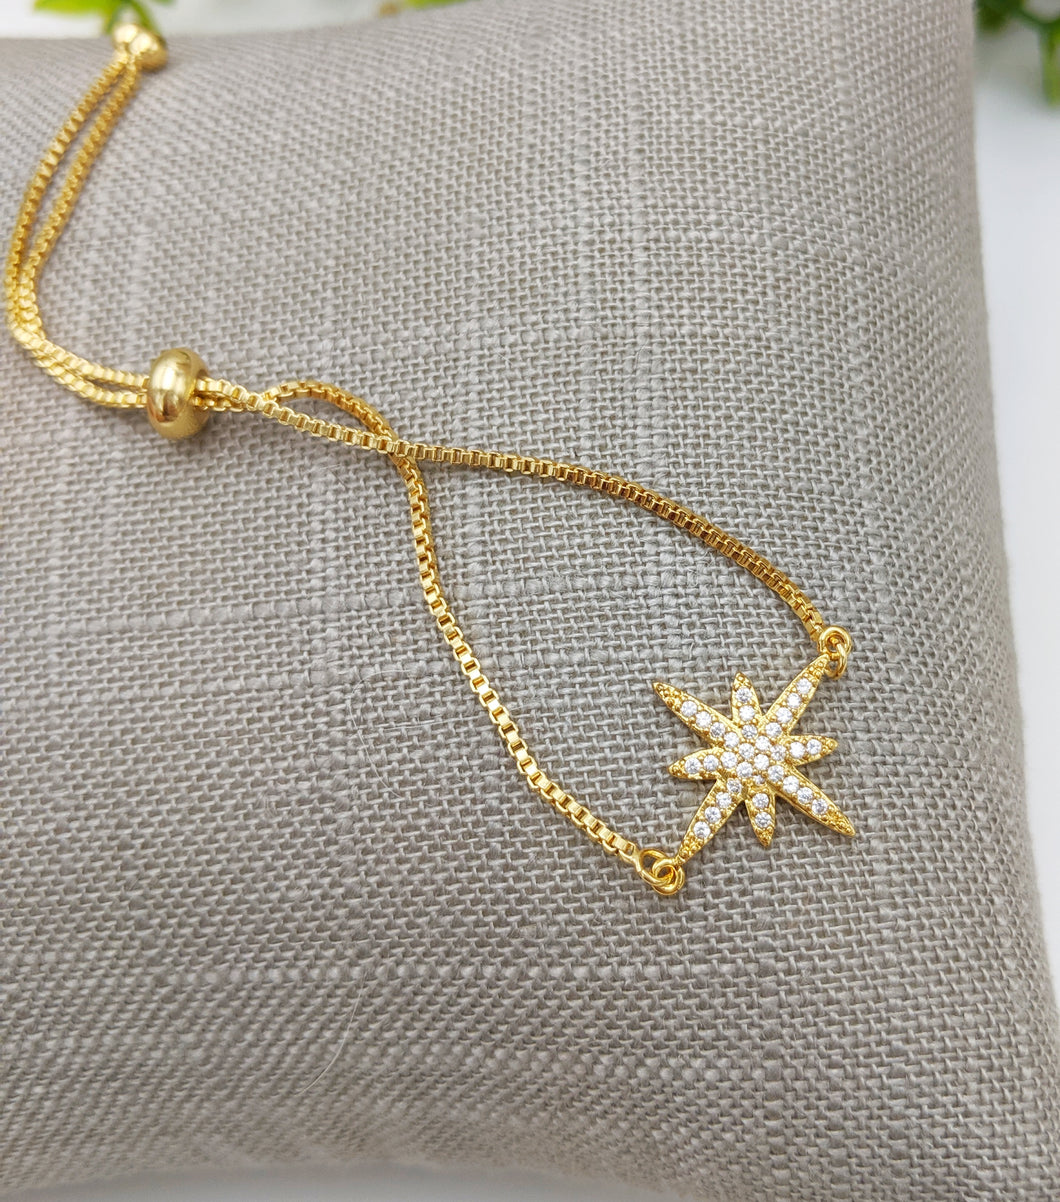 Star Adjustable Bracelet